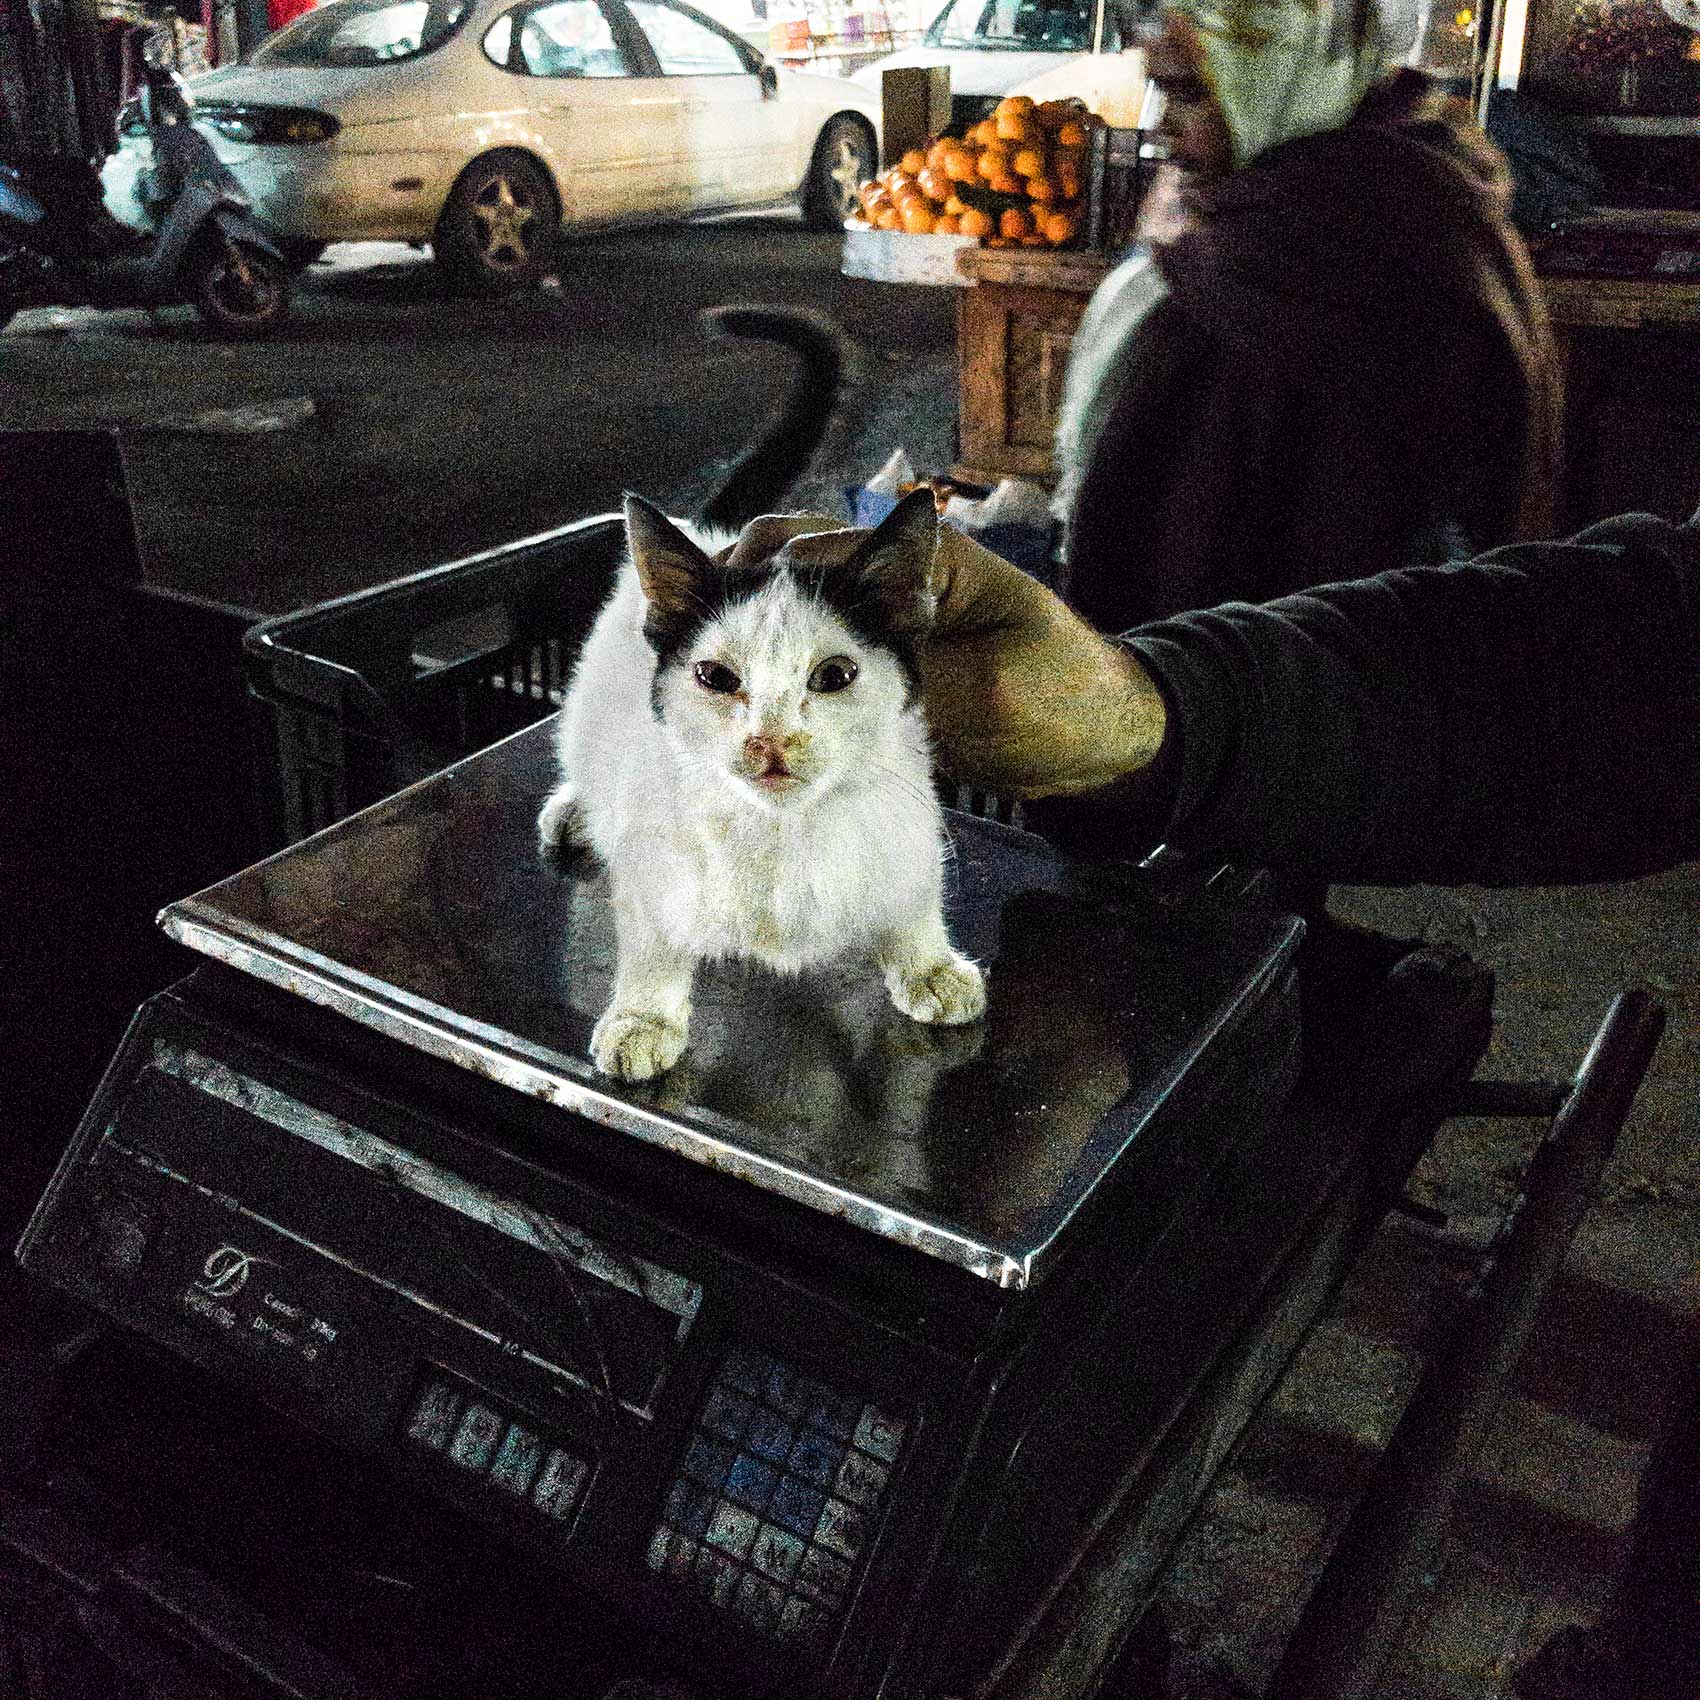 a kitten sits on a scale at the mar elias market in souther beirut lebanon